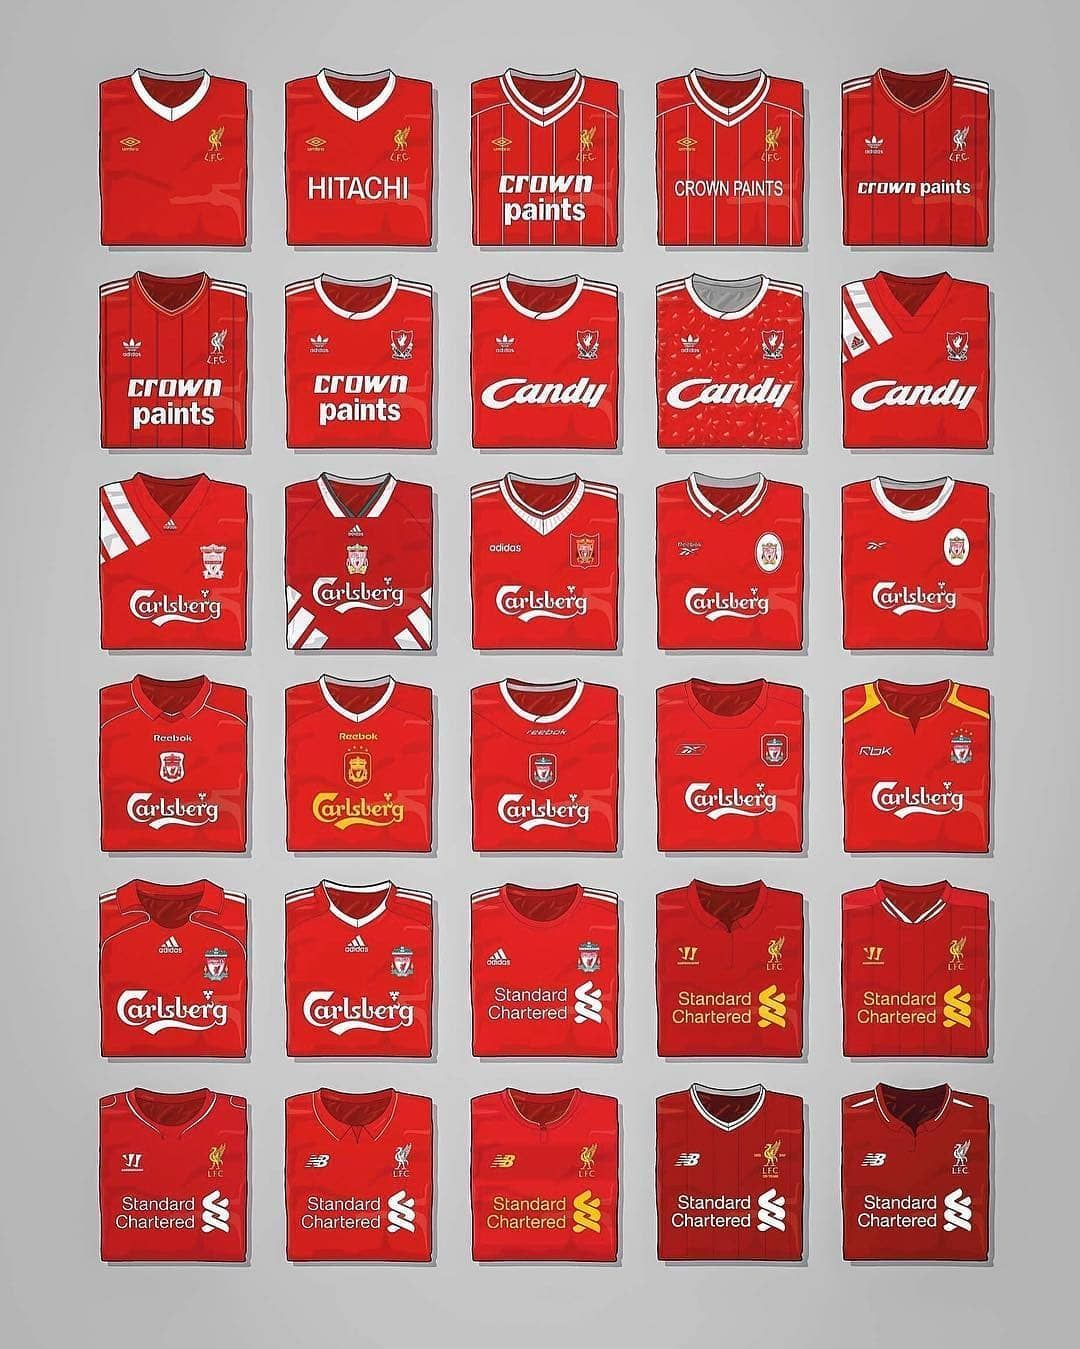 a50f2c68a Evolution of the Reds  jersey